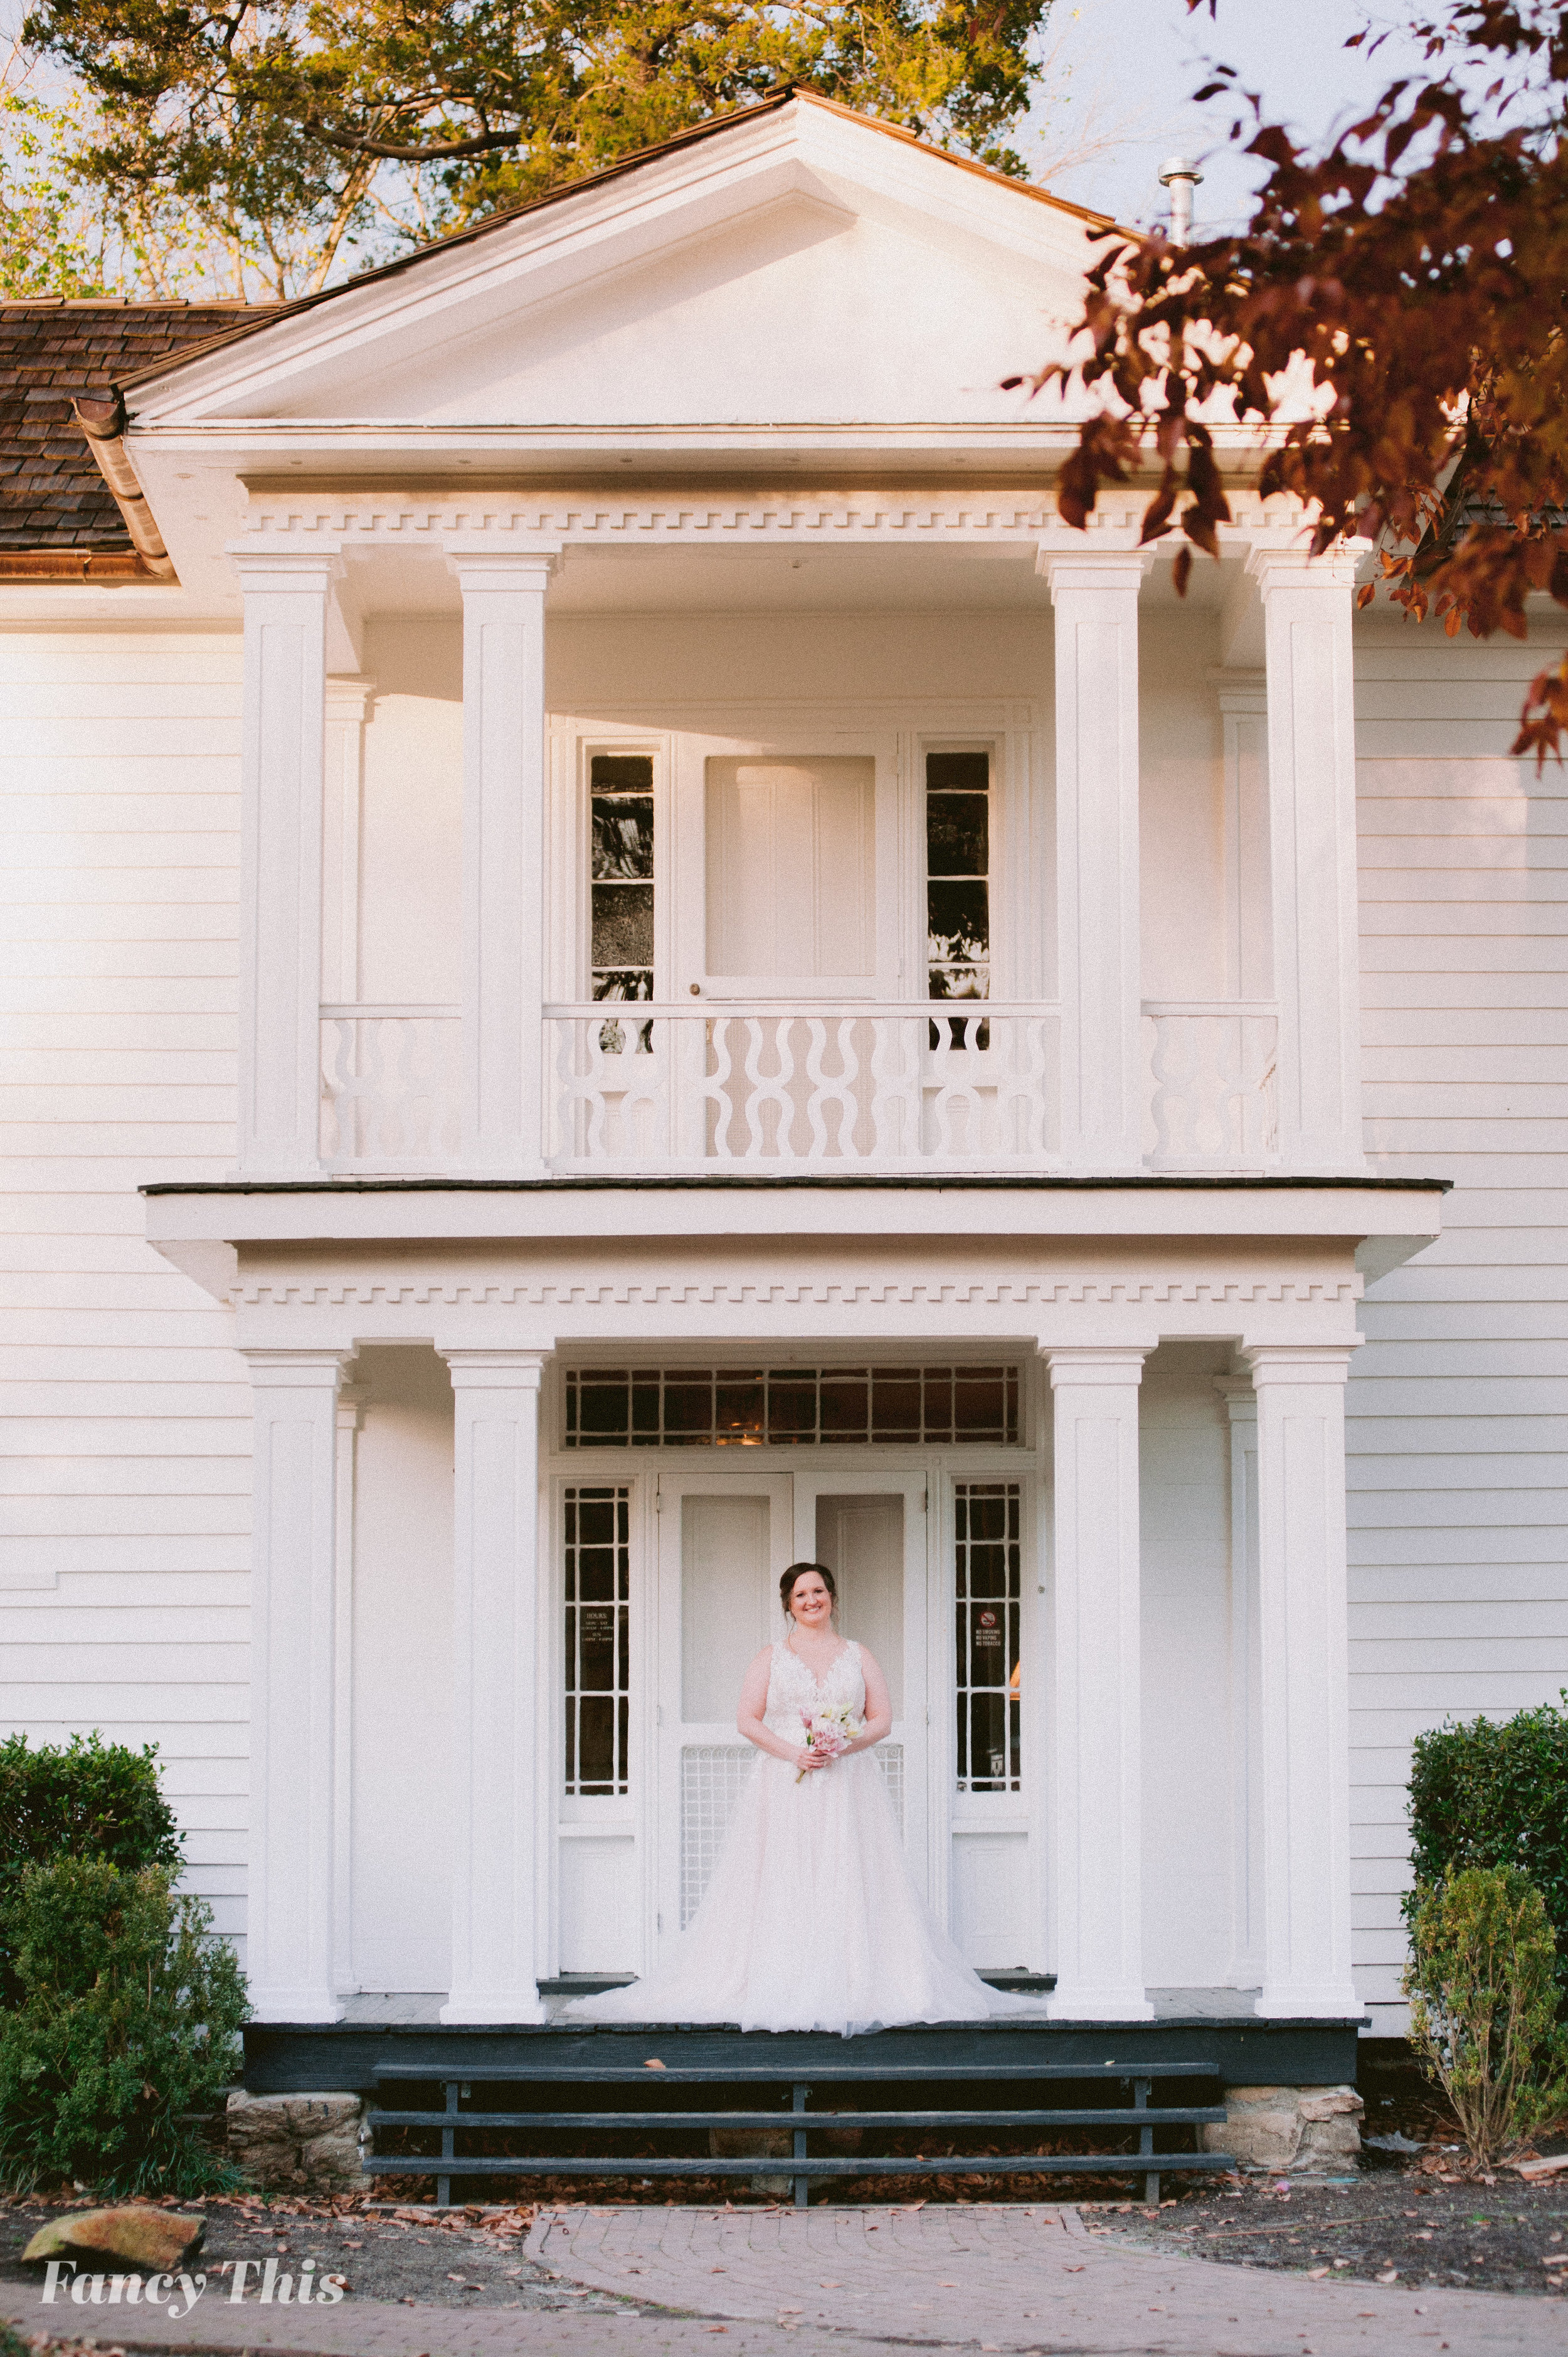 stacyrevels_raleighbridals_fancythis-36.jpg